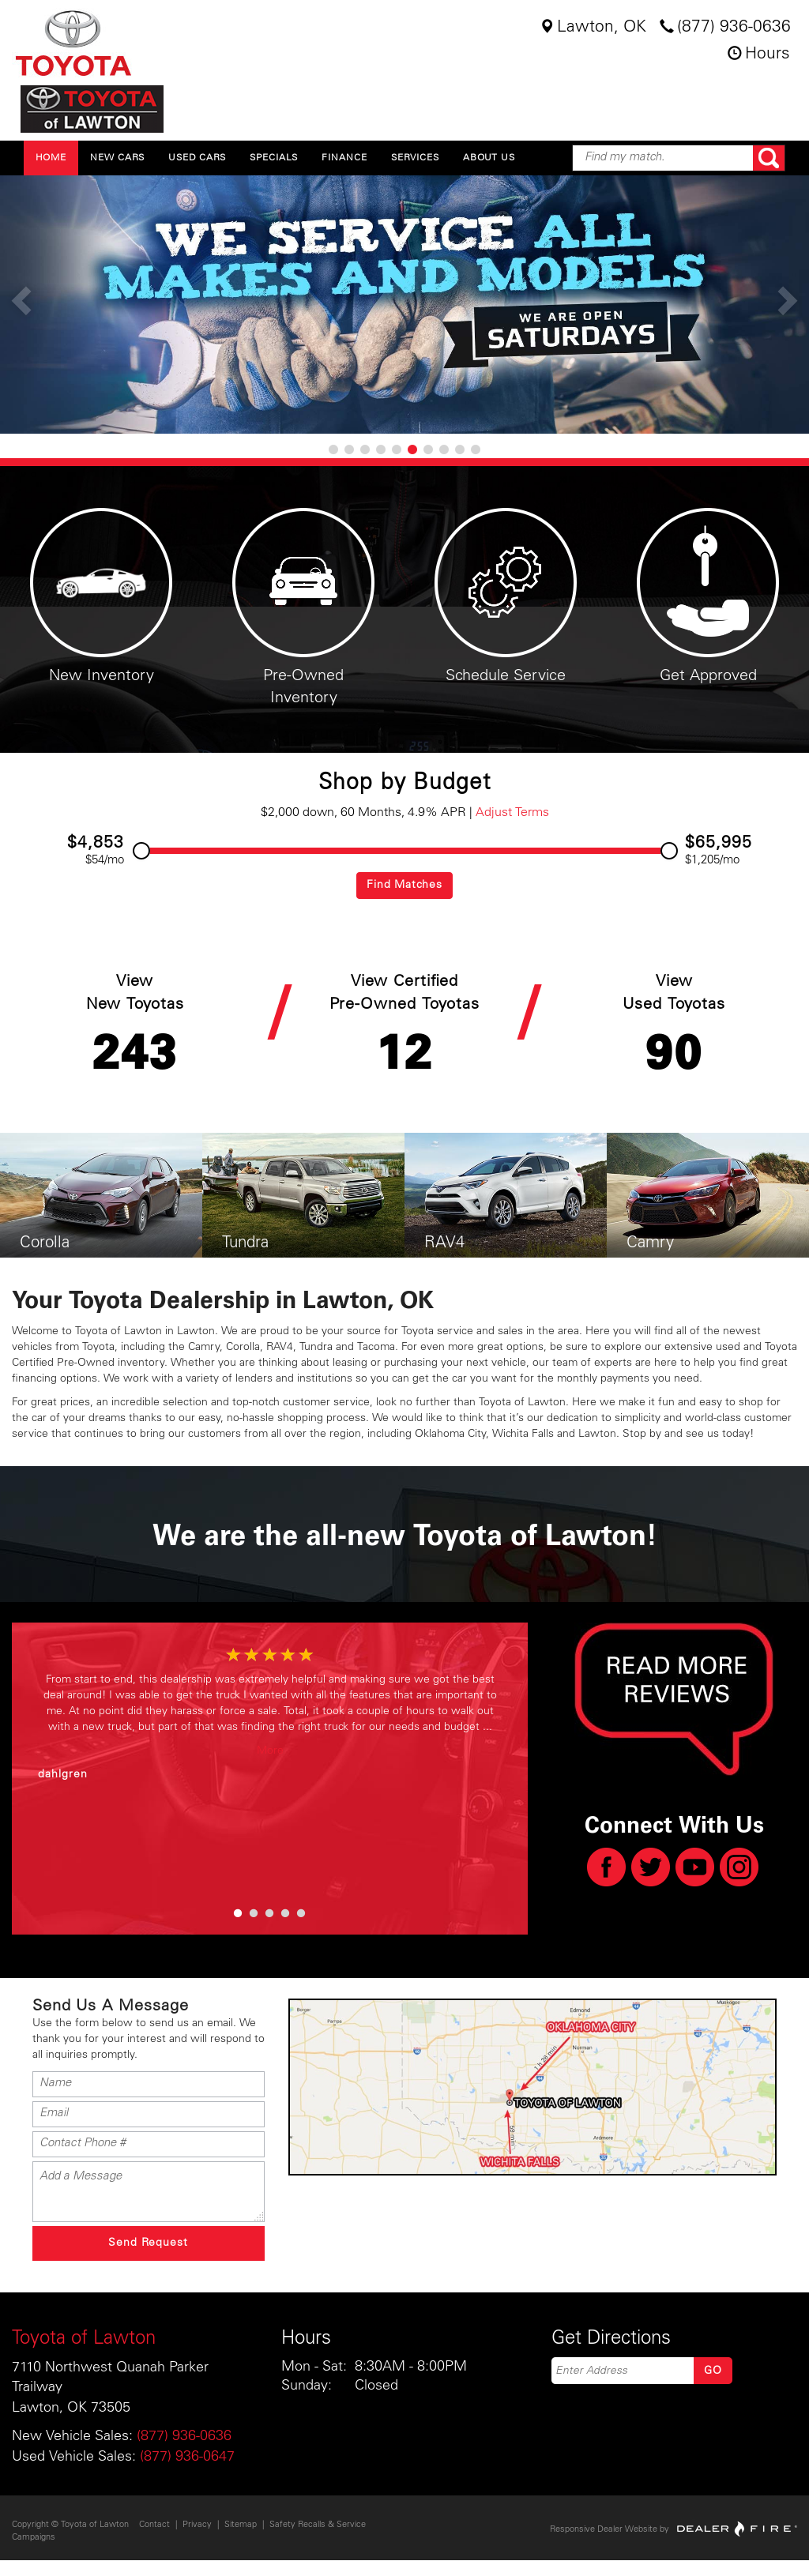 Charming Jim Norton Toyota Of Lawton Website History